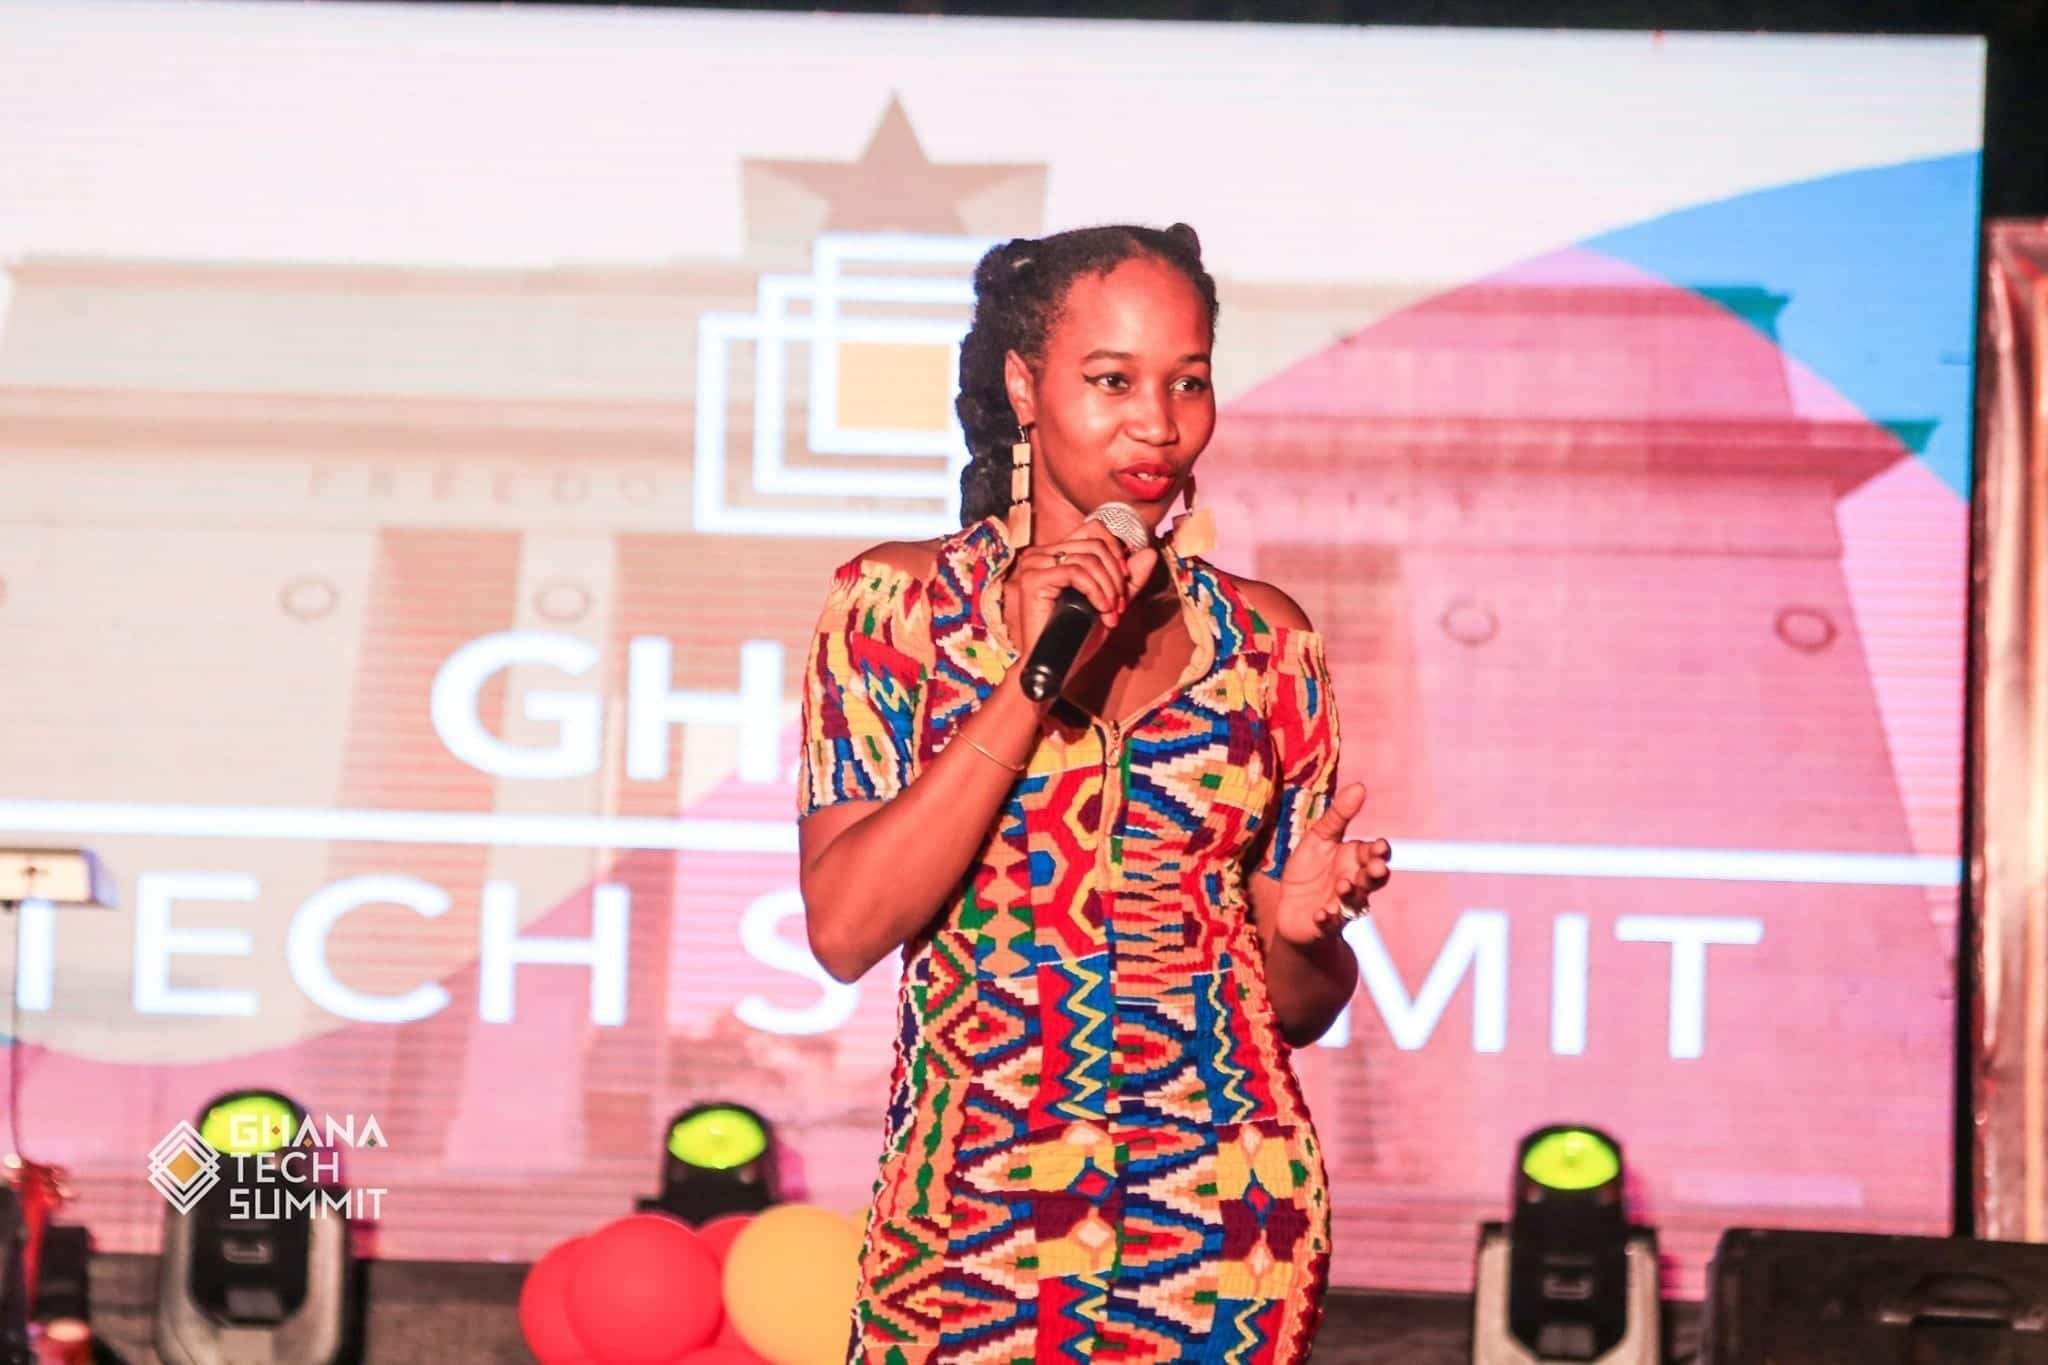 Ghana Tech Summit 19: Deliberate imitation of the right things; a good model for innovation